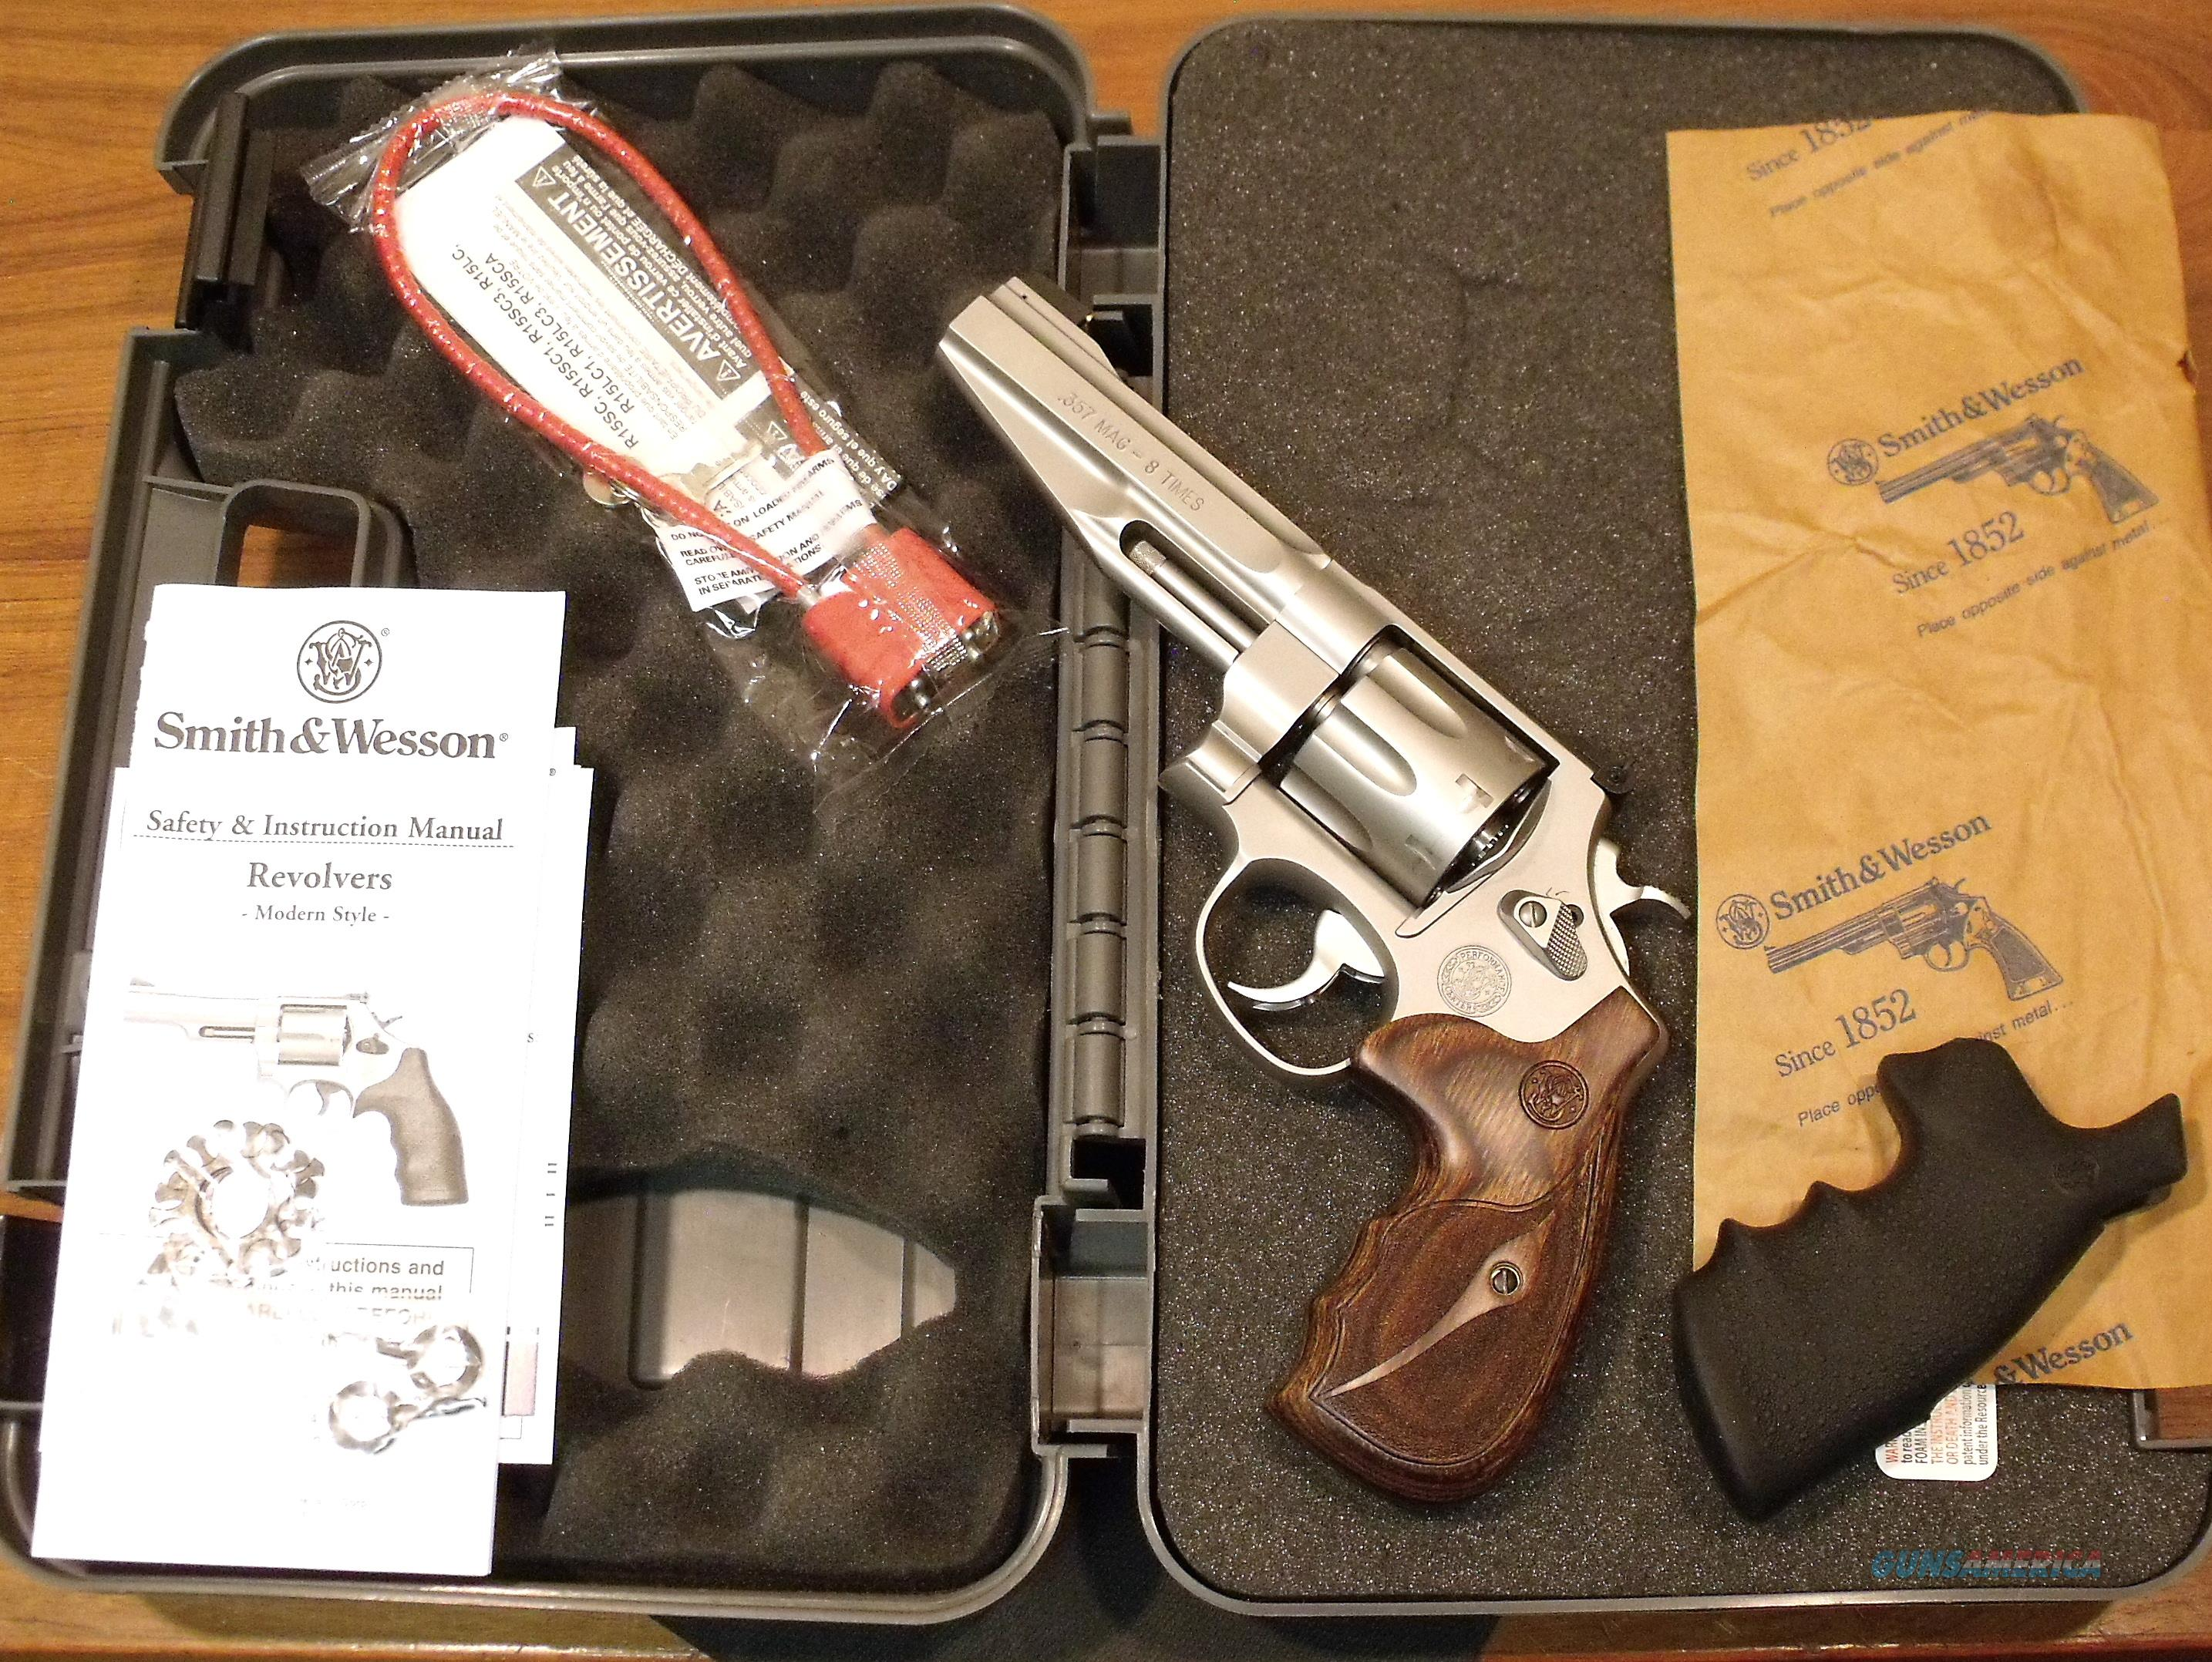 S&W Smith & Wesson 627-5 627 Performance Center Stainless 8-shot NEW CA OK 2 sets of Grips  Guns > Pistols > Smith & Wesson Revolvers > Performance Center